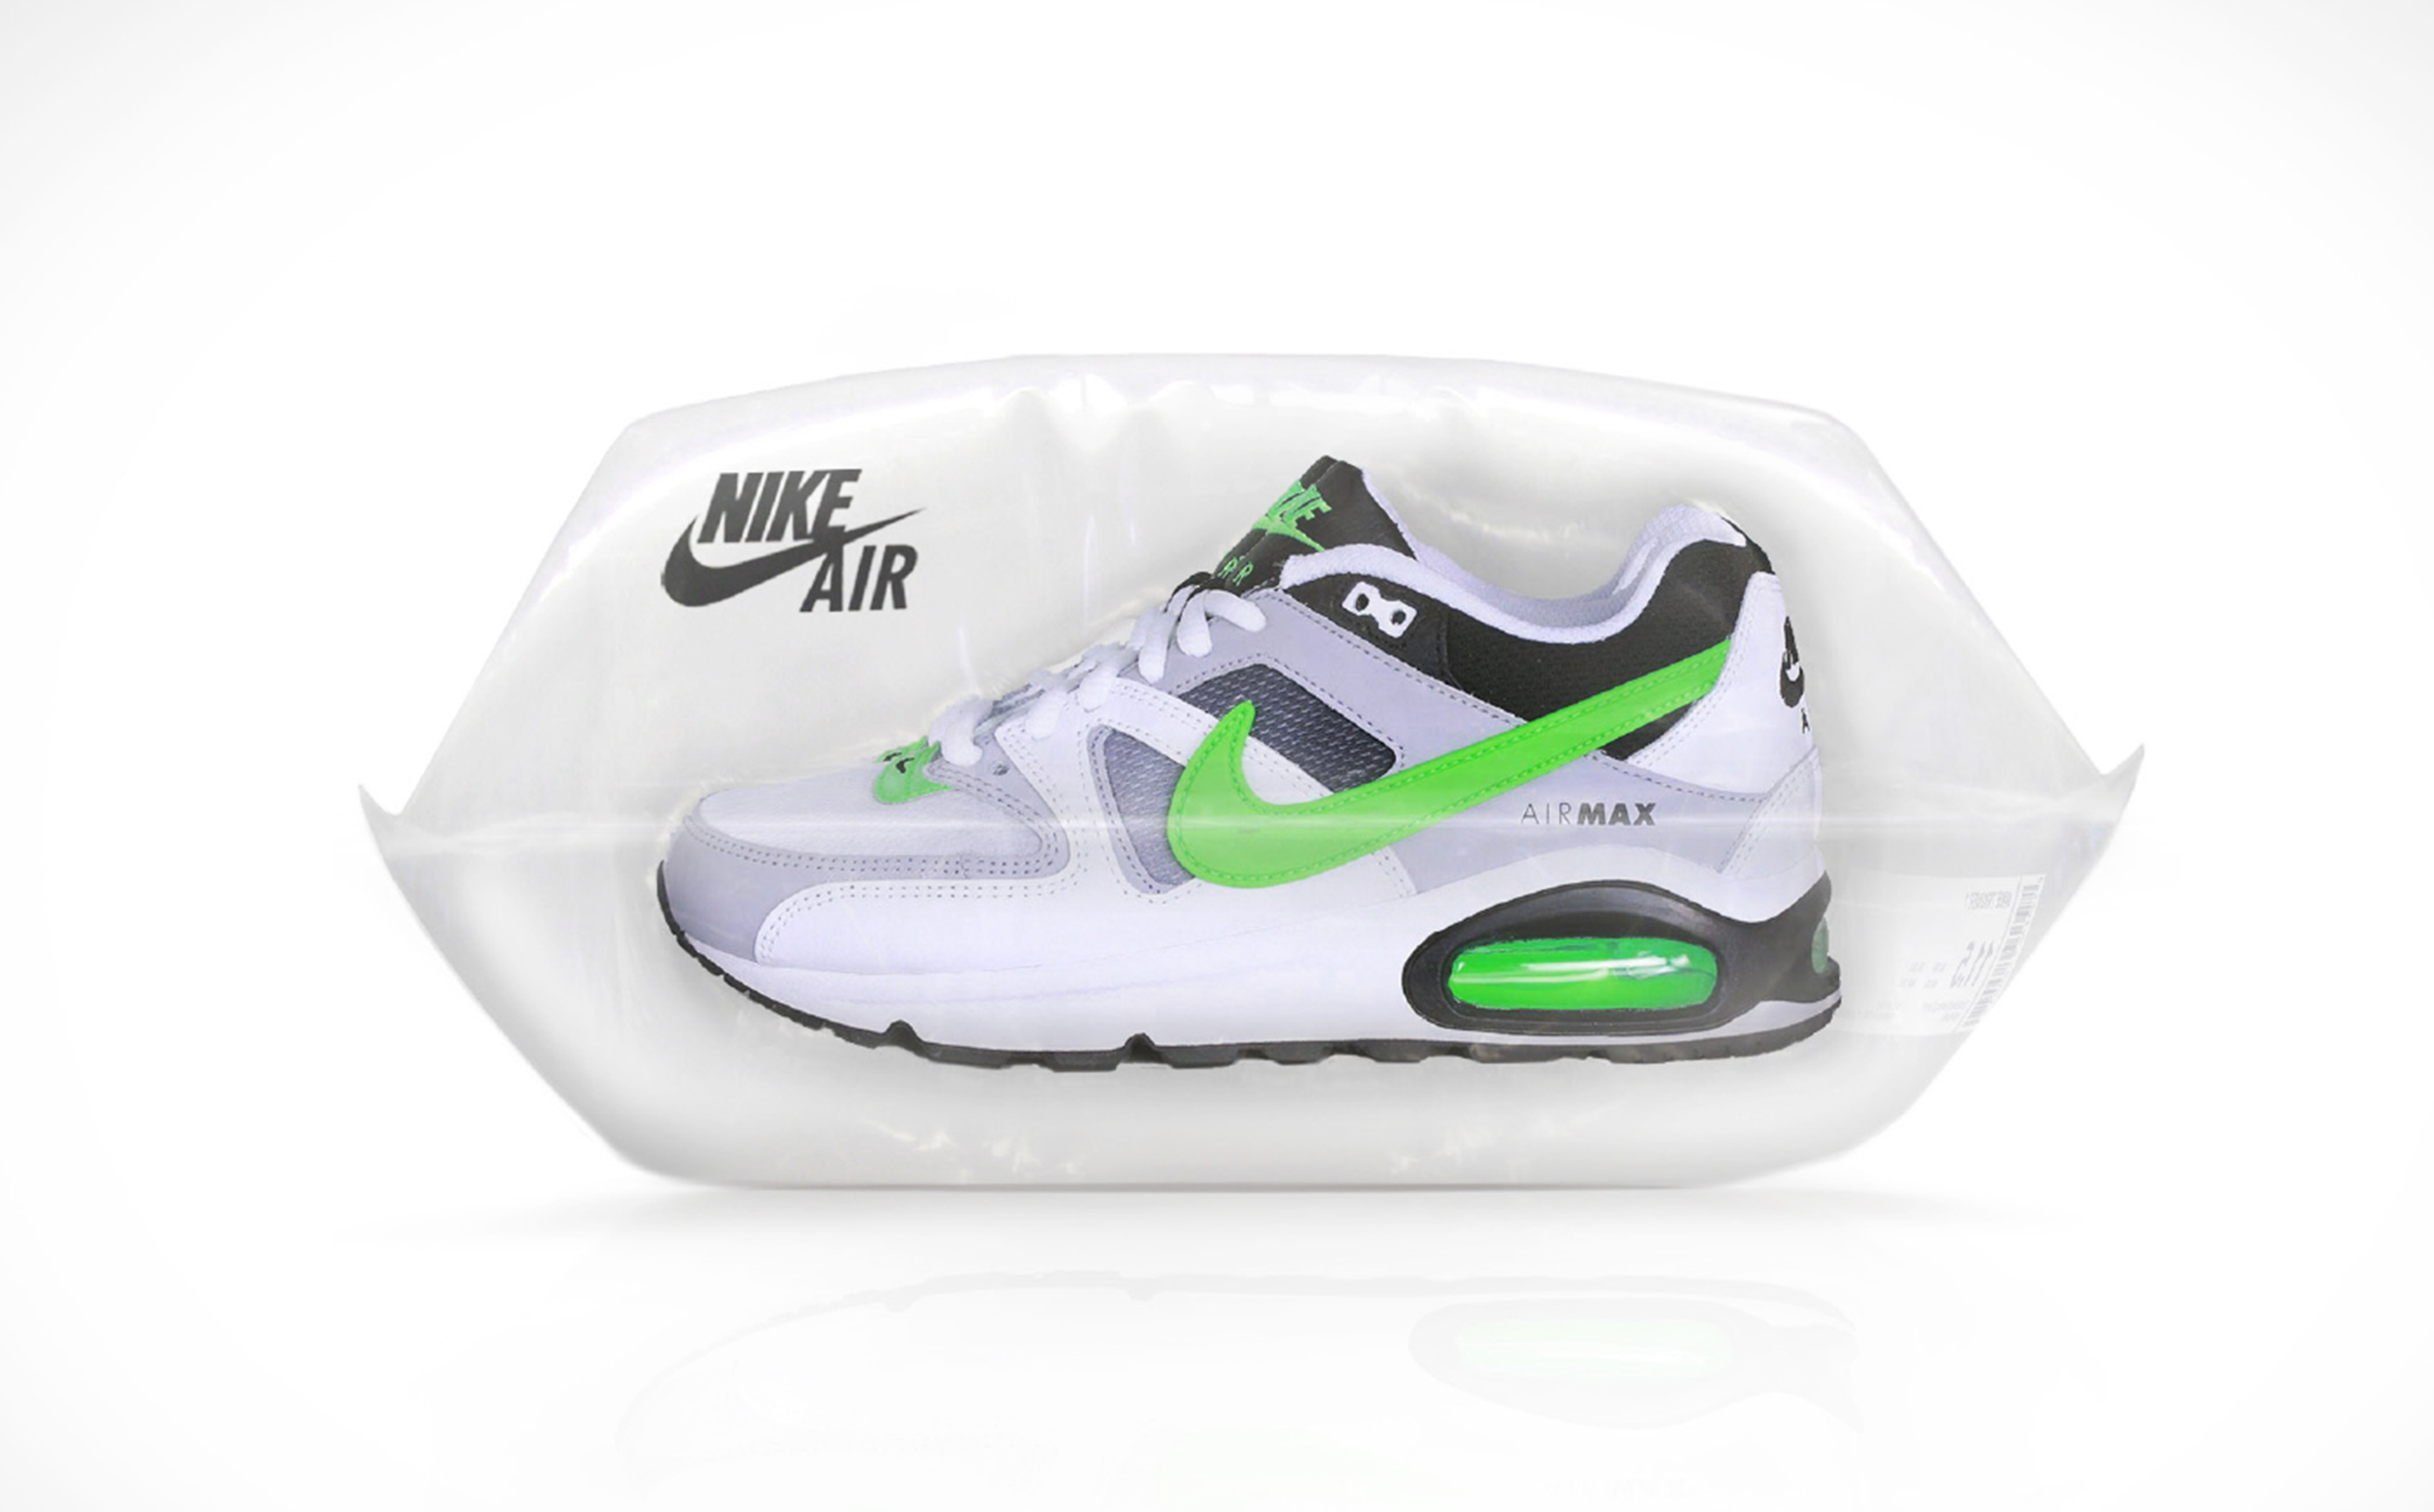 Nike - Air Packaging / Concept